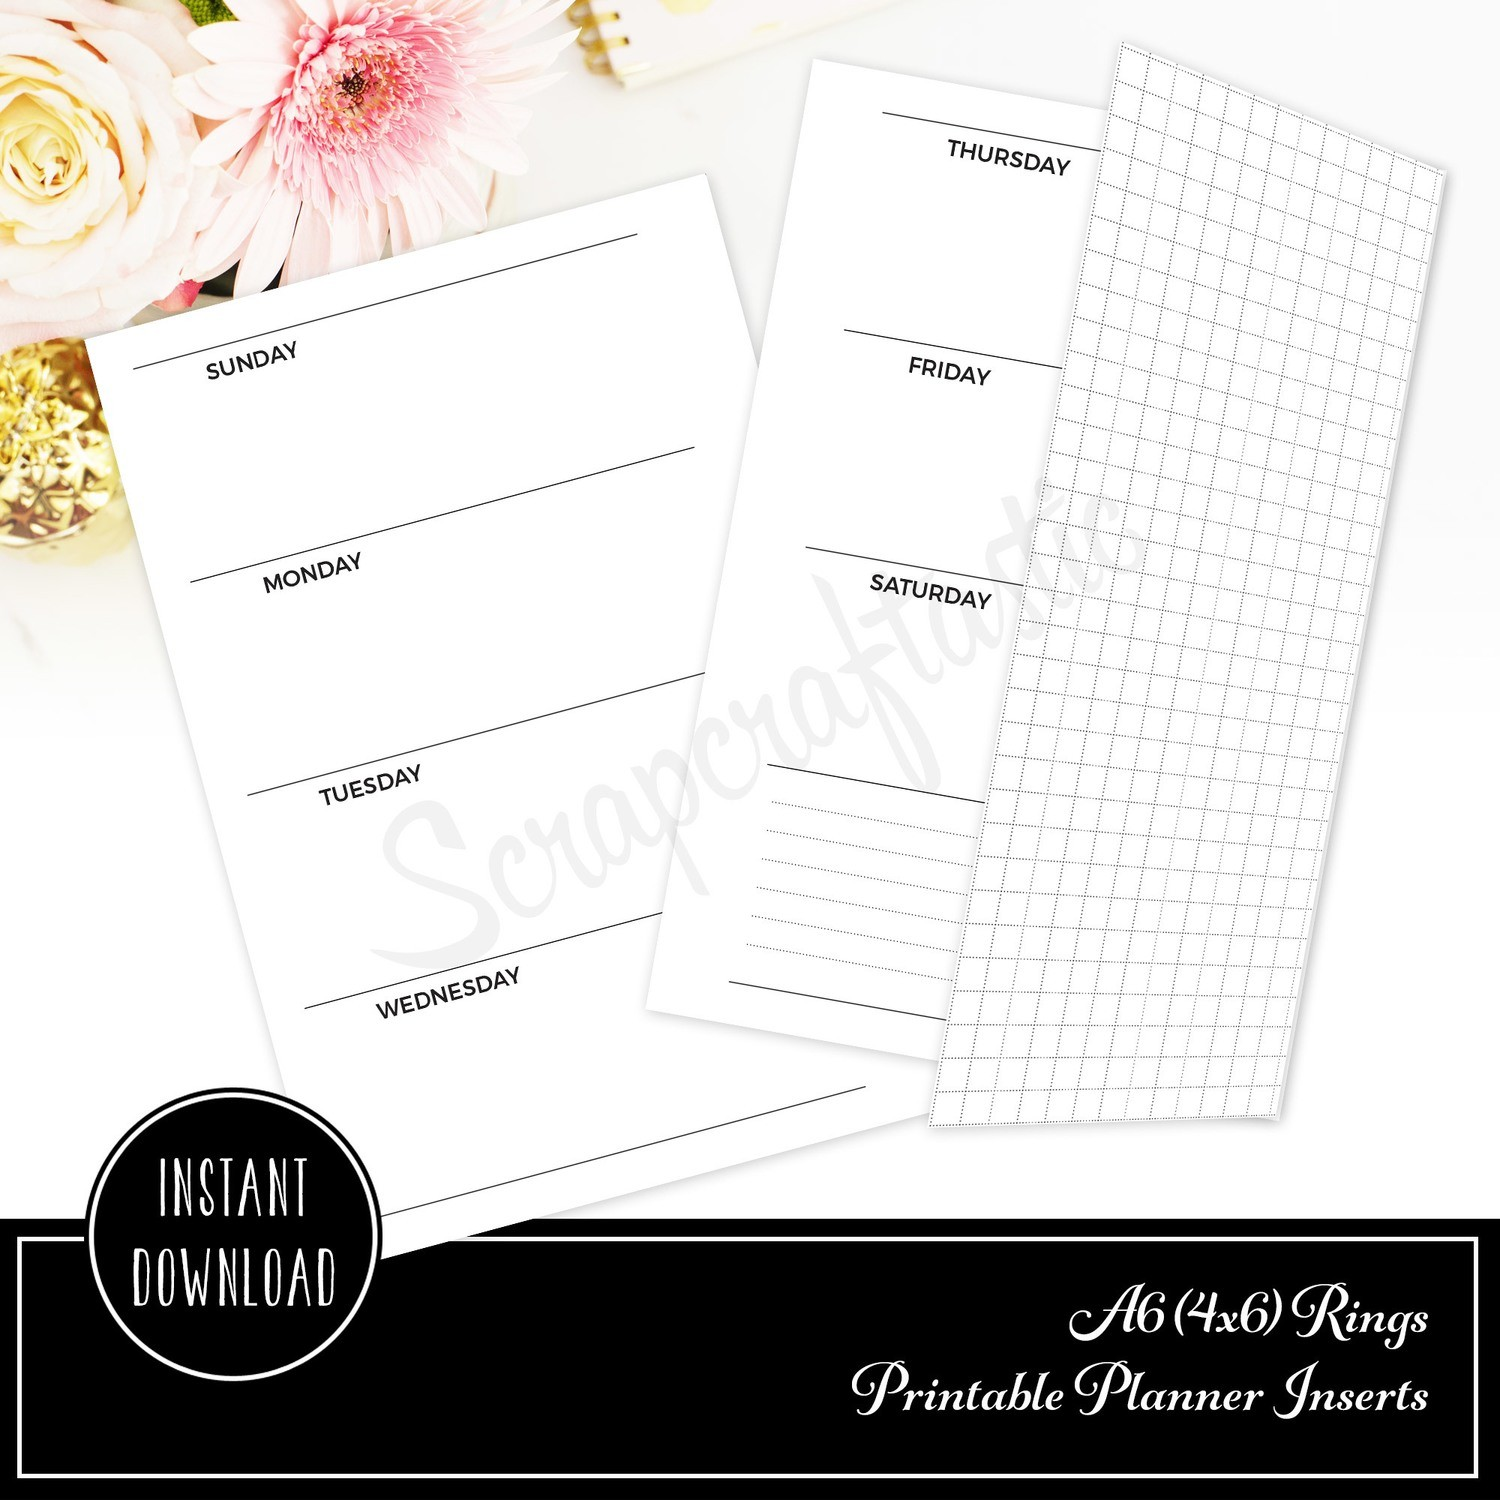 A6 RINGS - Horizontal Week On Two Pages  with Grid Tip-In Printable Planner Inserts Undated Sunday Start